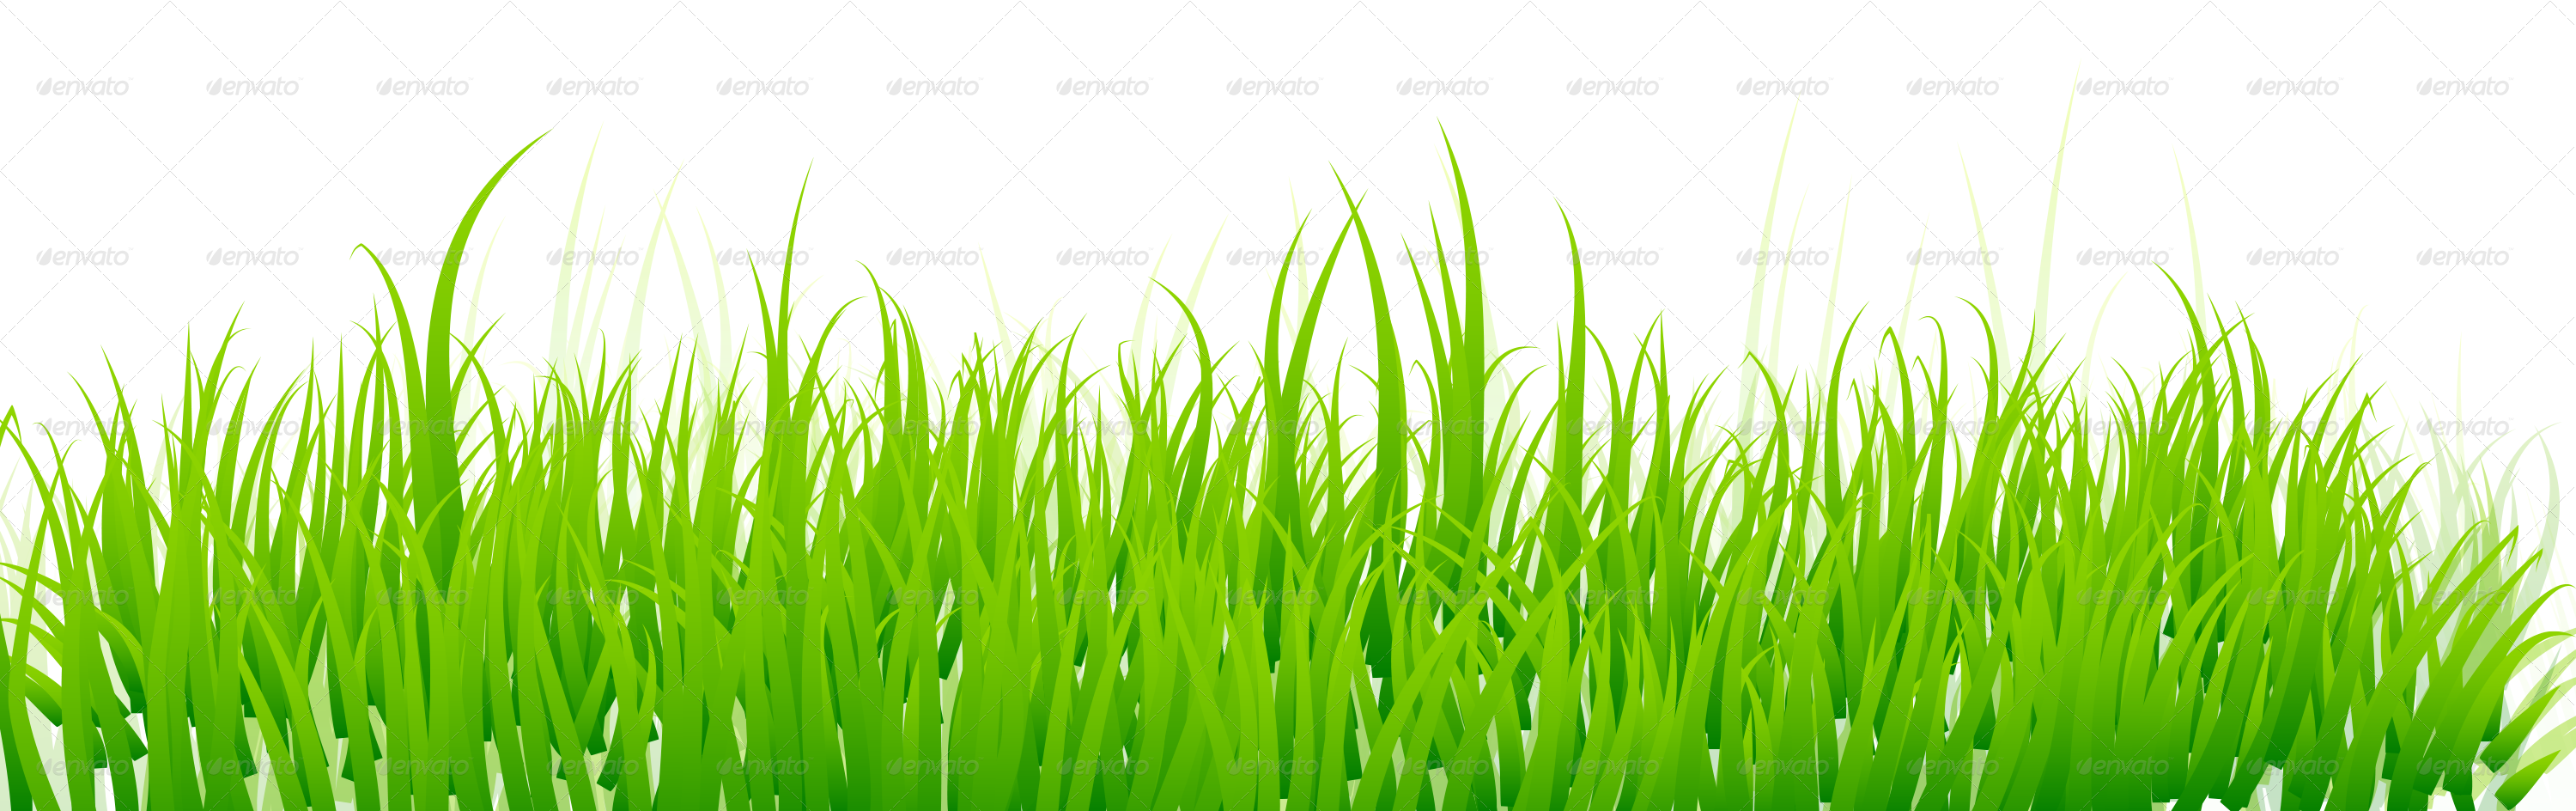 1.png 2.png 3.png PlusPng.com  - Grass HD PNG